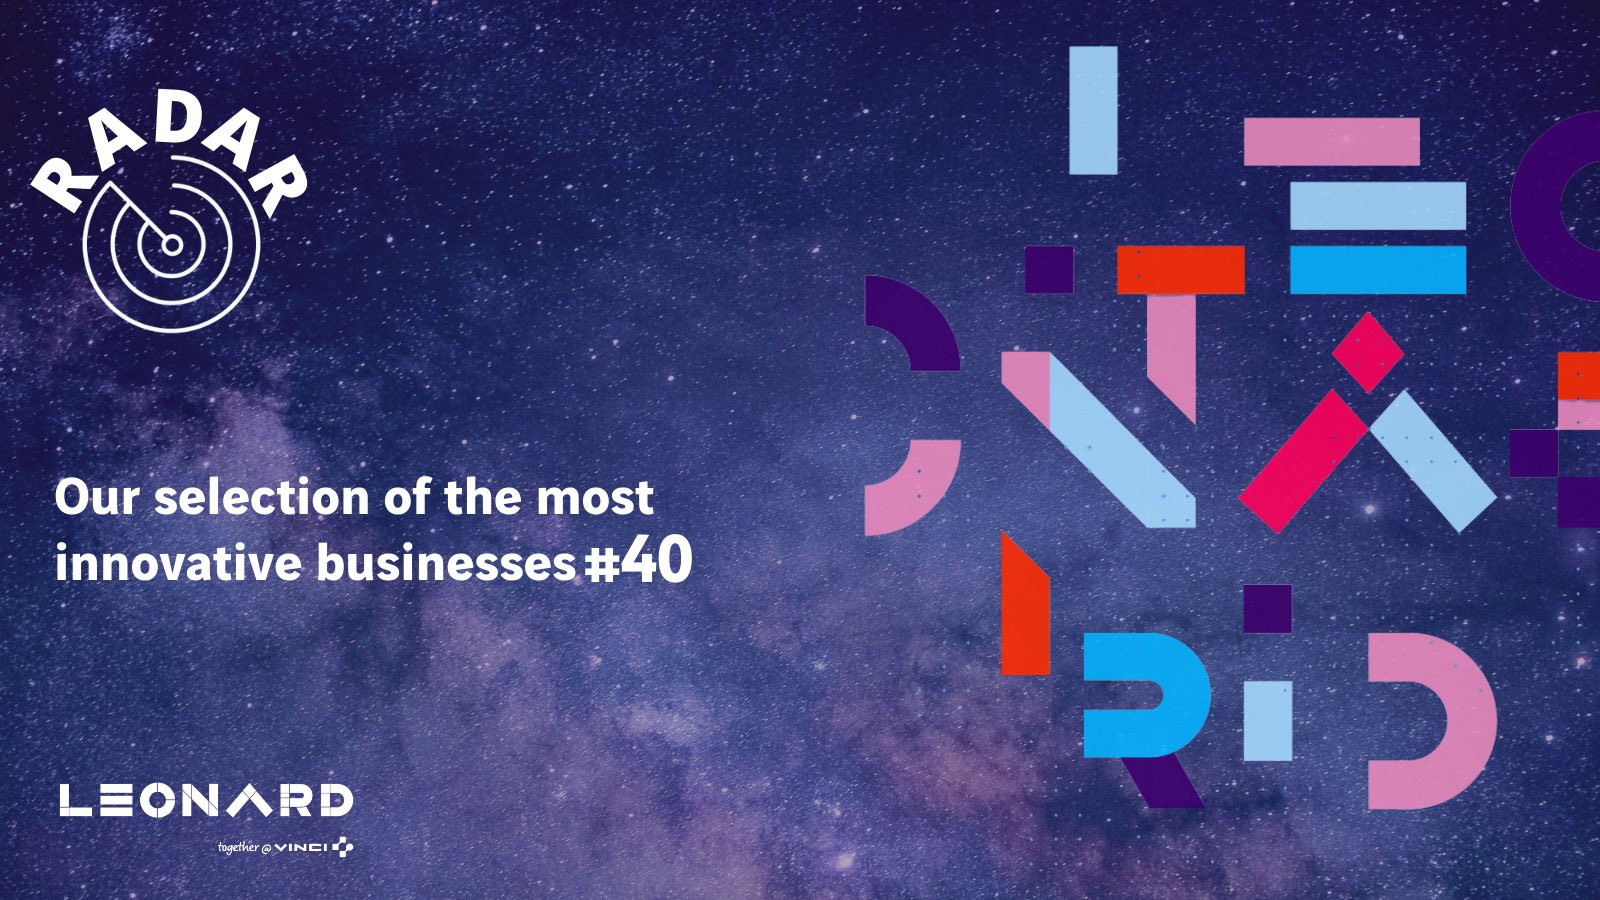 Radar – Our selection of innovative businesses #40